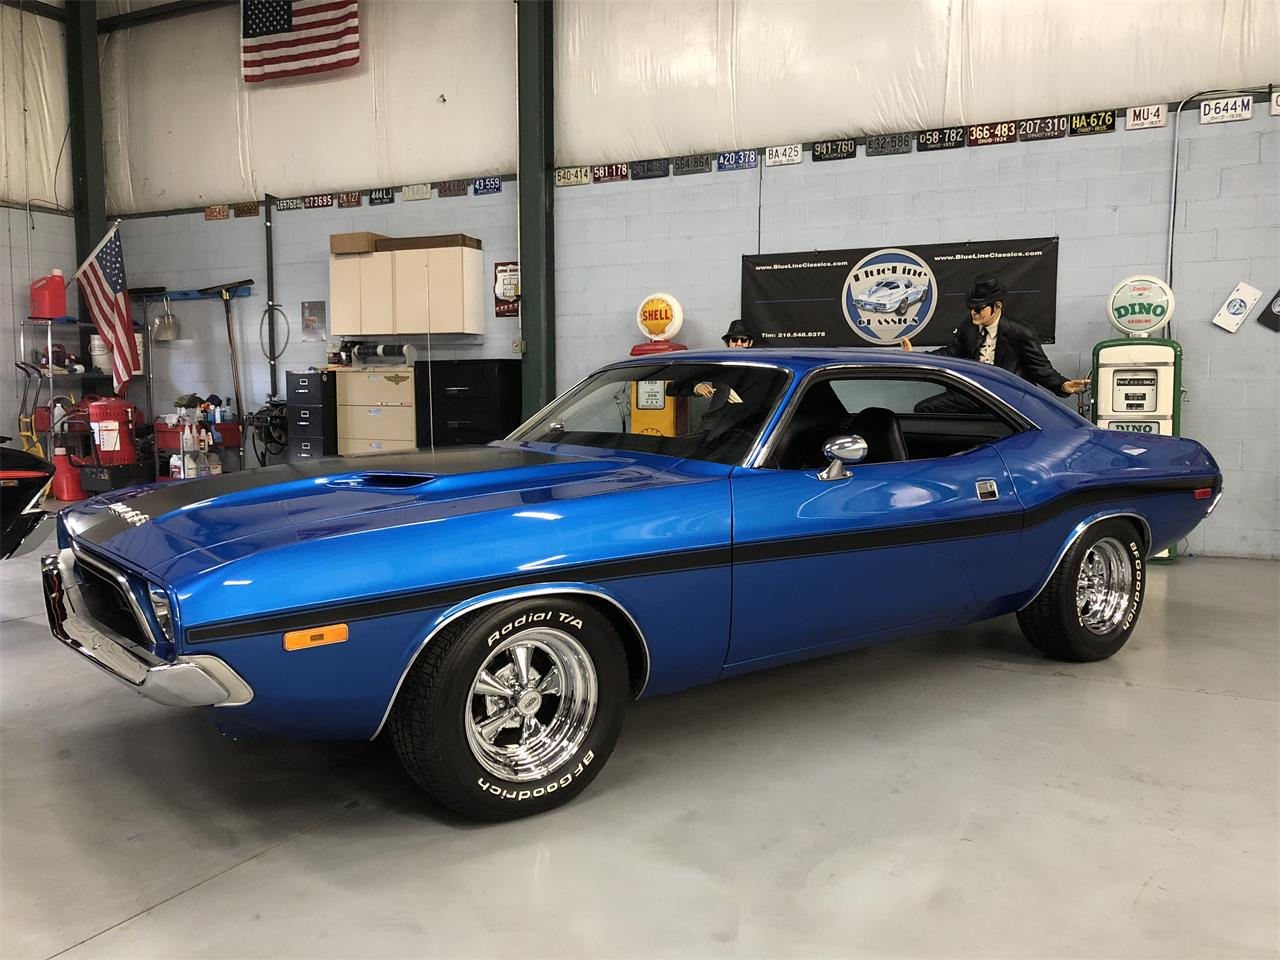 Abandoned Rare 1969 Plymouth GTX Muscle Car Being